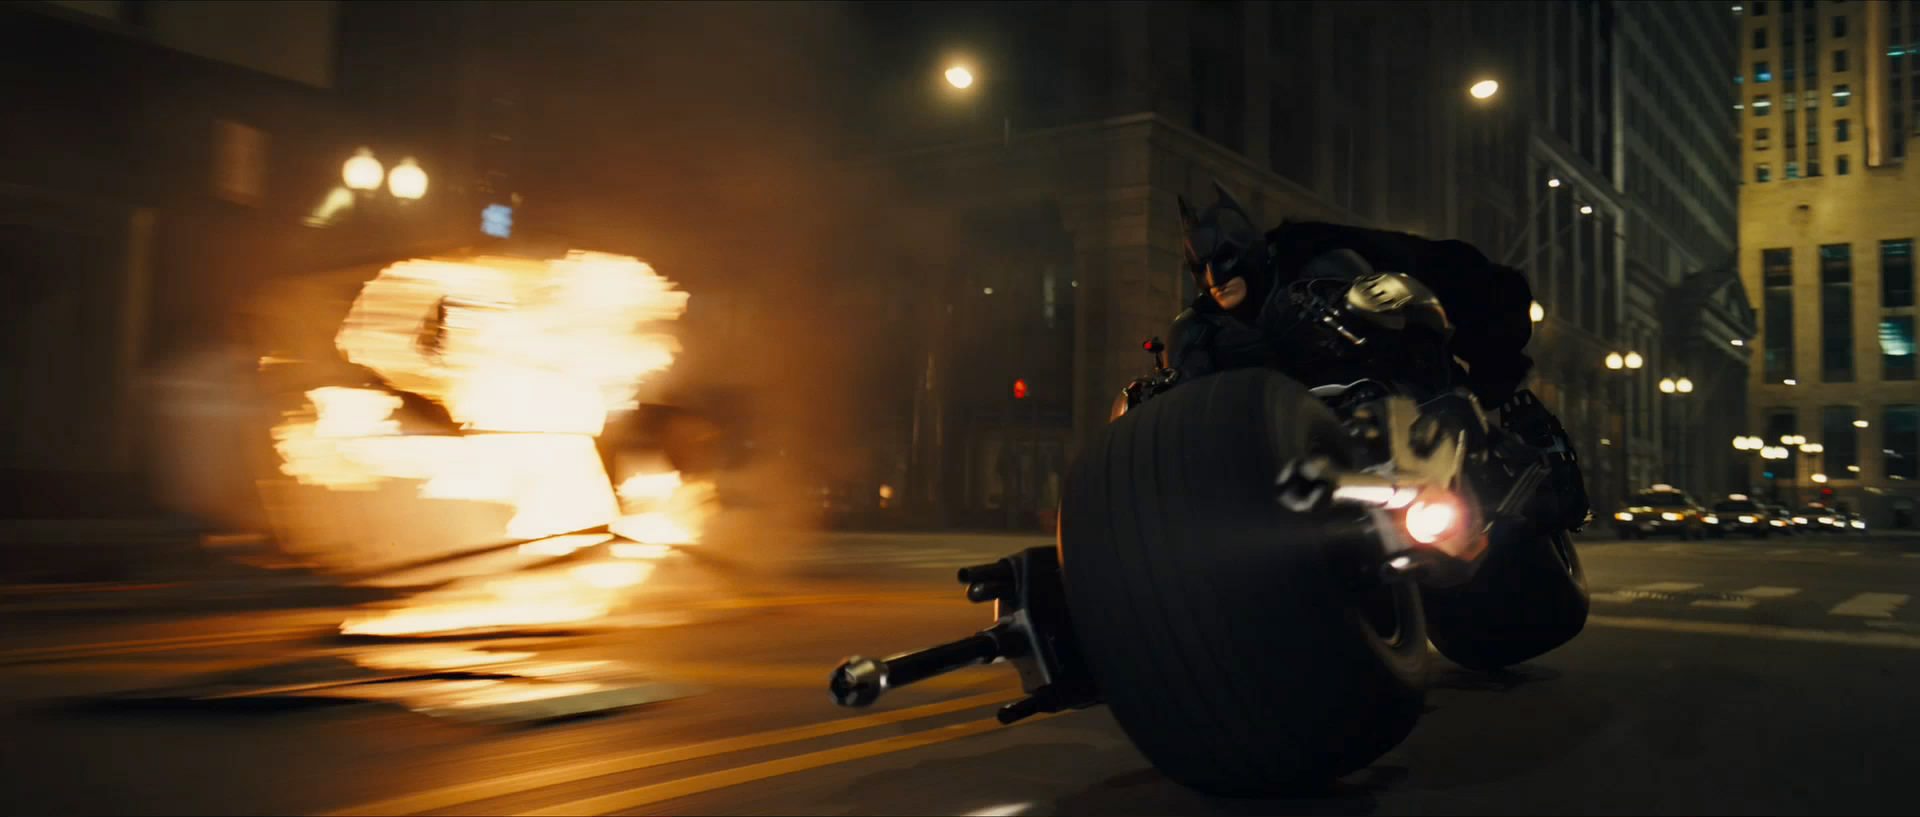 La Dark knight Trilogy de Christopher Nolan Bat-pod-snapshot20080504111443